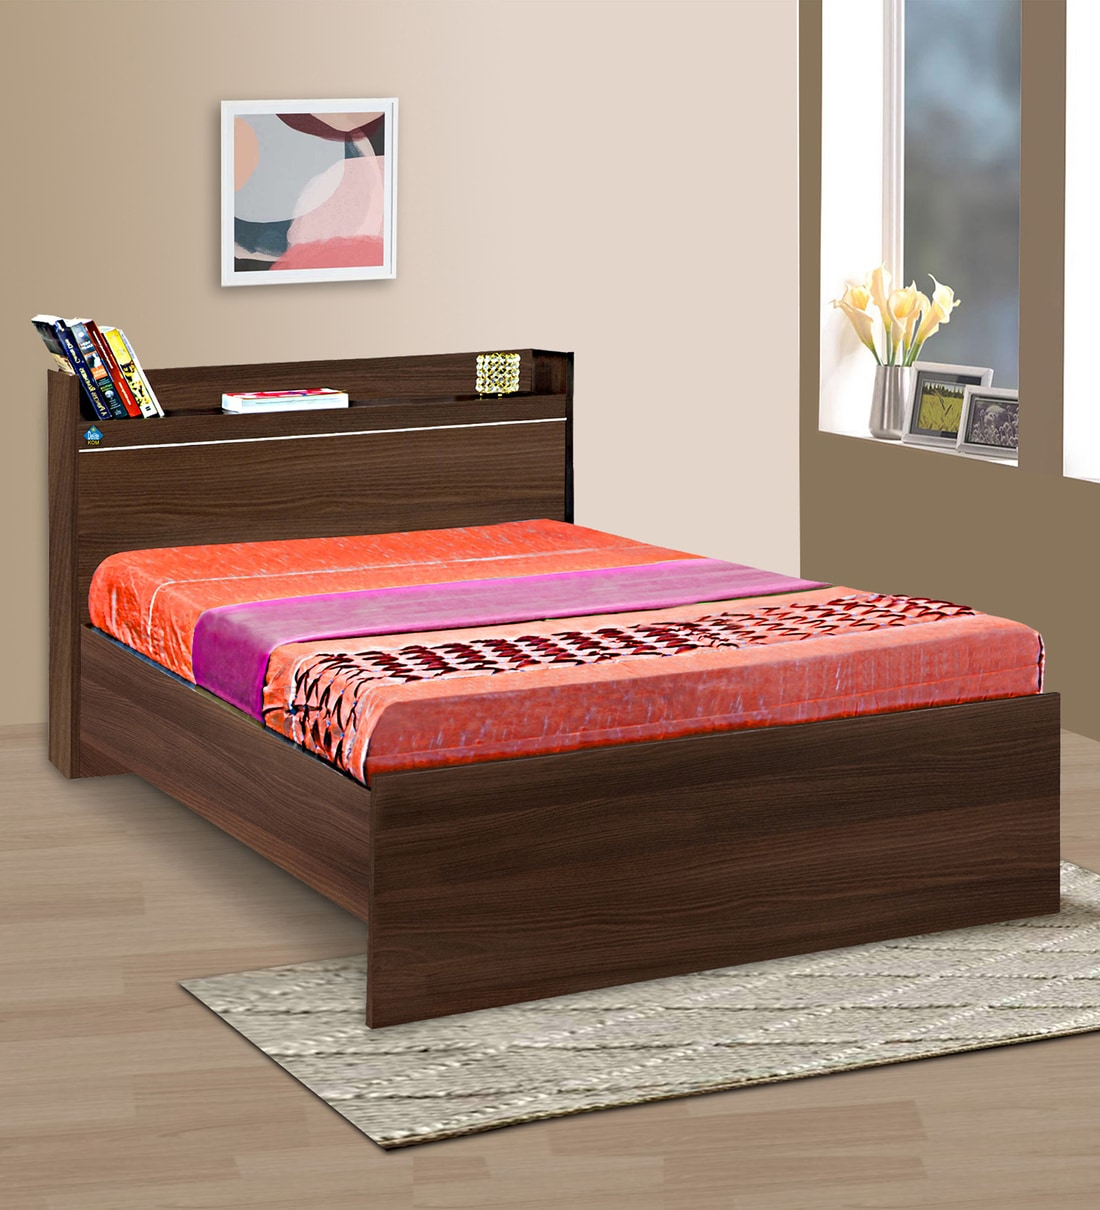 Buy Cherry Single Bed With Open Headboard Shelf Storage In Acacia Dark Finish By Delite Kom Online Modern Single Beds Beds Furniture Pepperfry Product